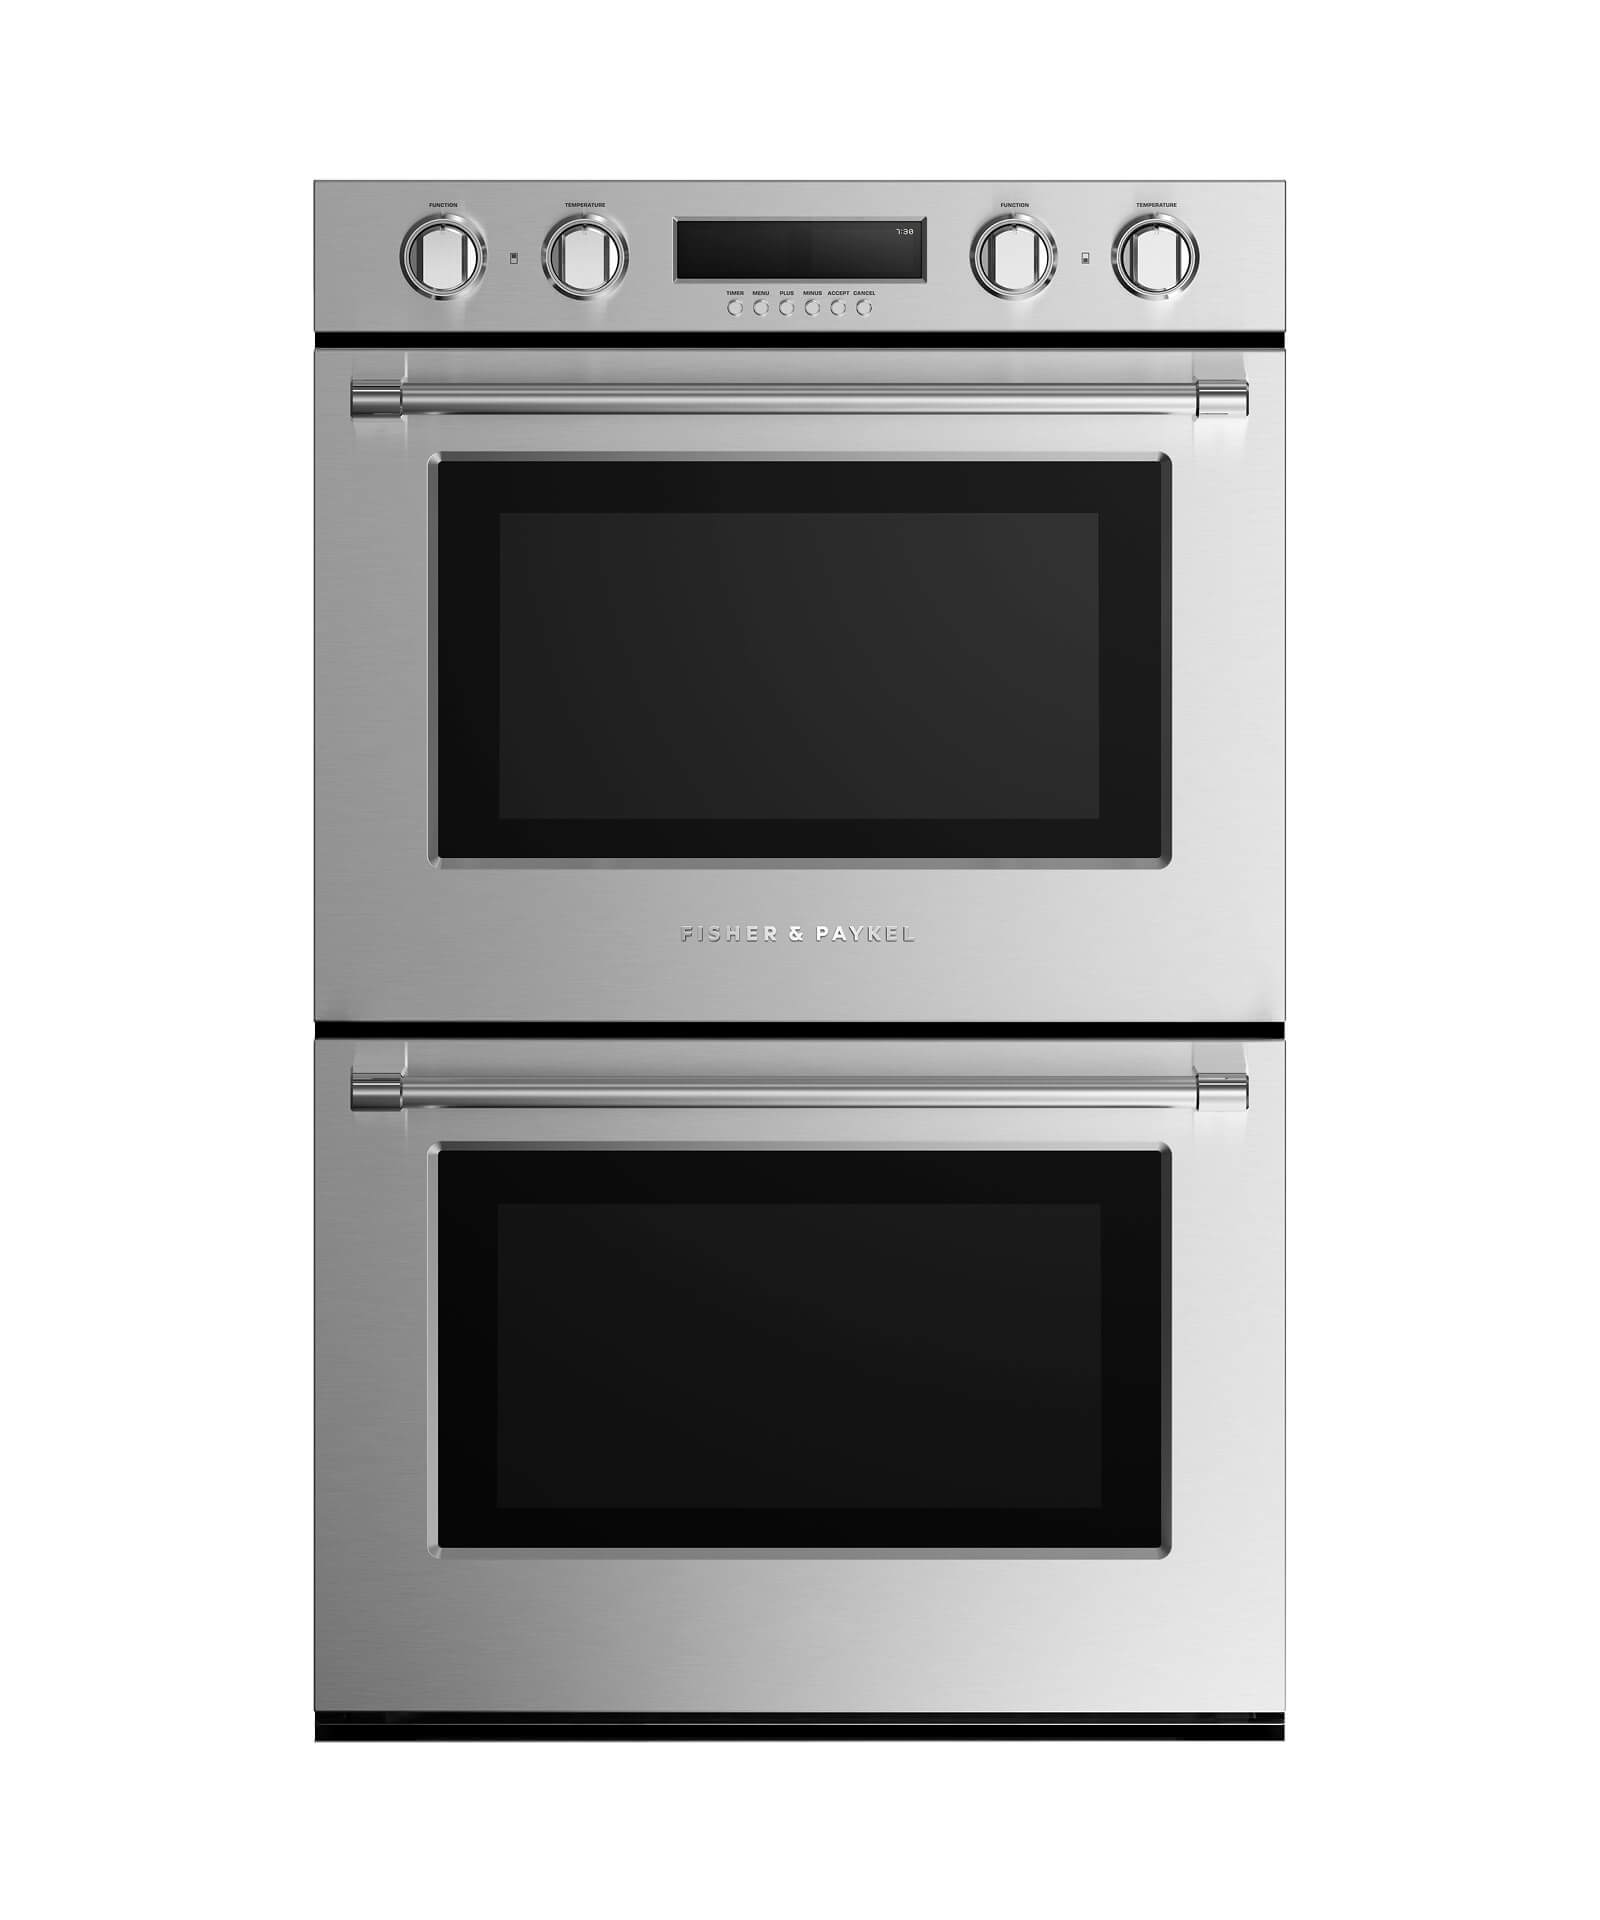 """Fisher and Paykel Double Built-in Oven 30"""" 8.2 cu ft, 10 Functions"""